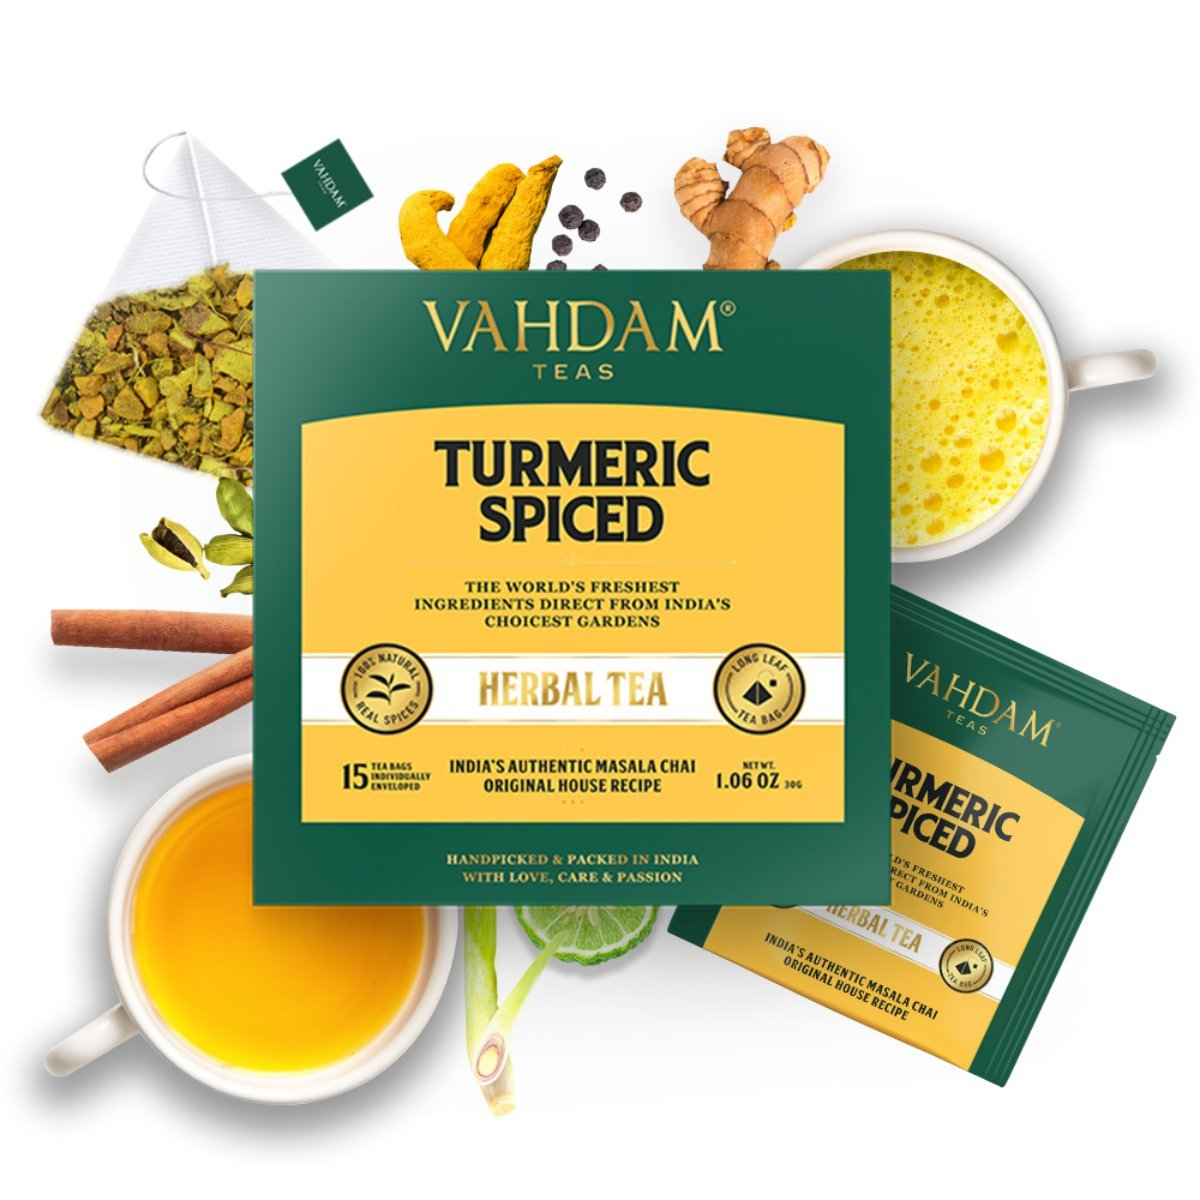 Turmeric Spiced Herbal Tea (15 Pyramid Tea Bags)